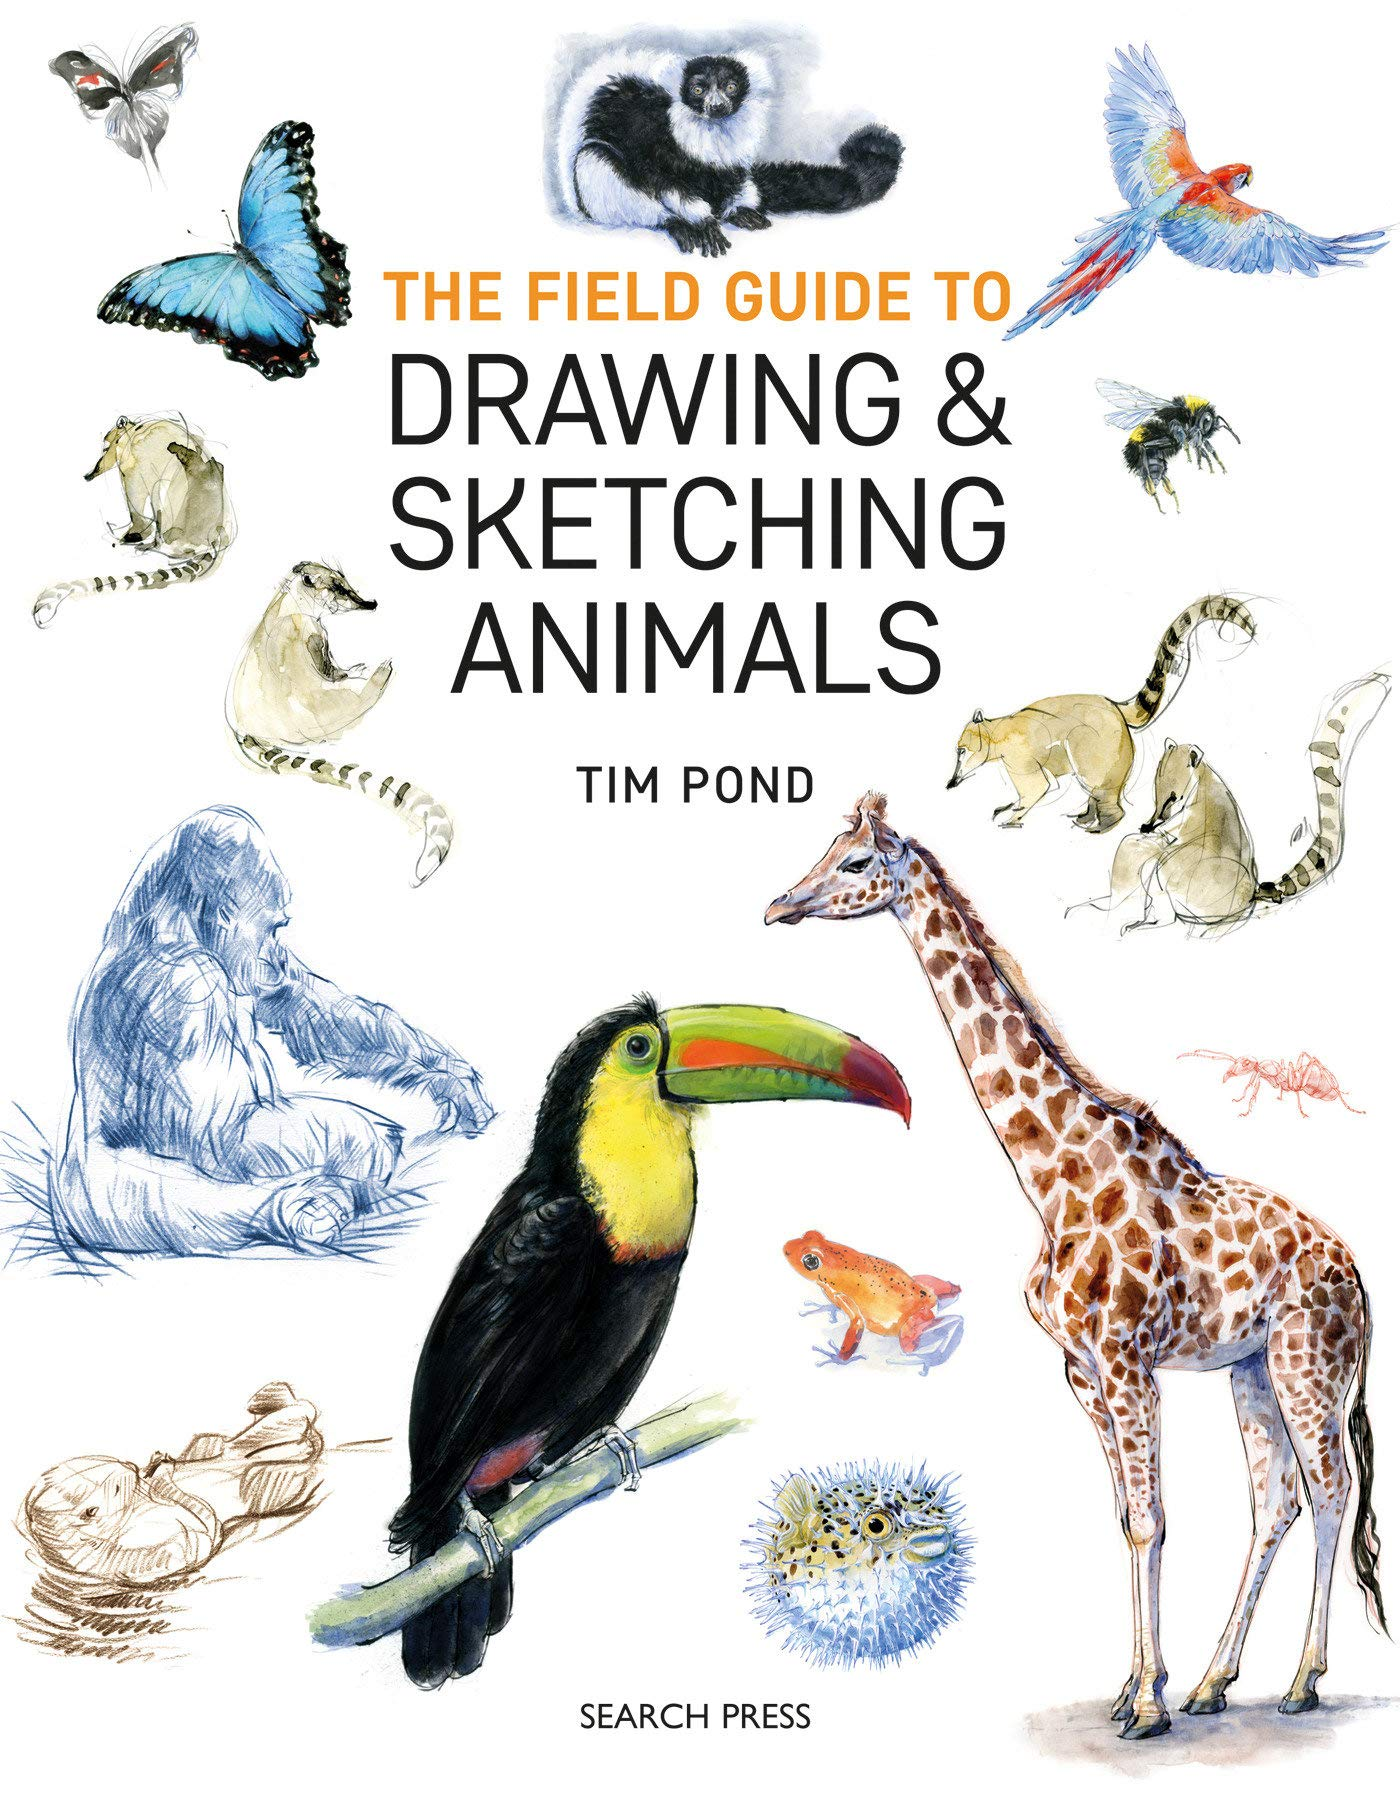 Amazon Com Field Guide To Drawing And Sketching Animals The 9781782215127 Pond Tim Books